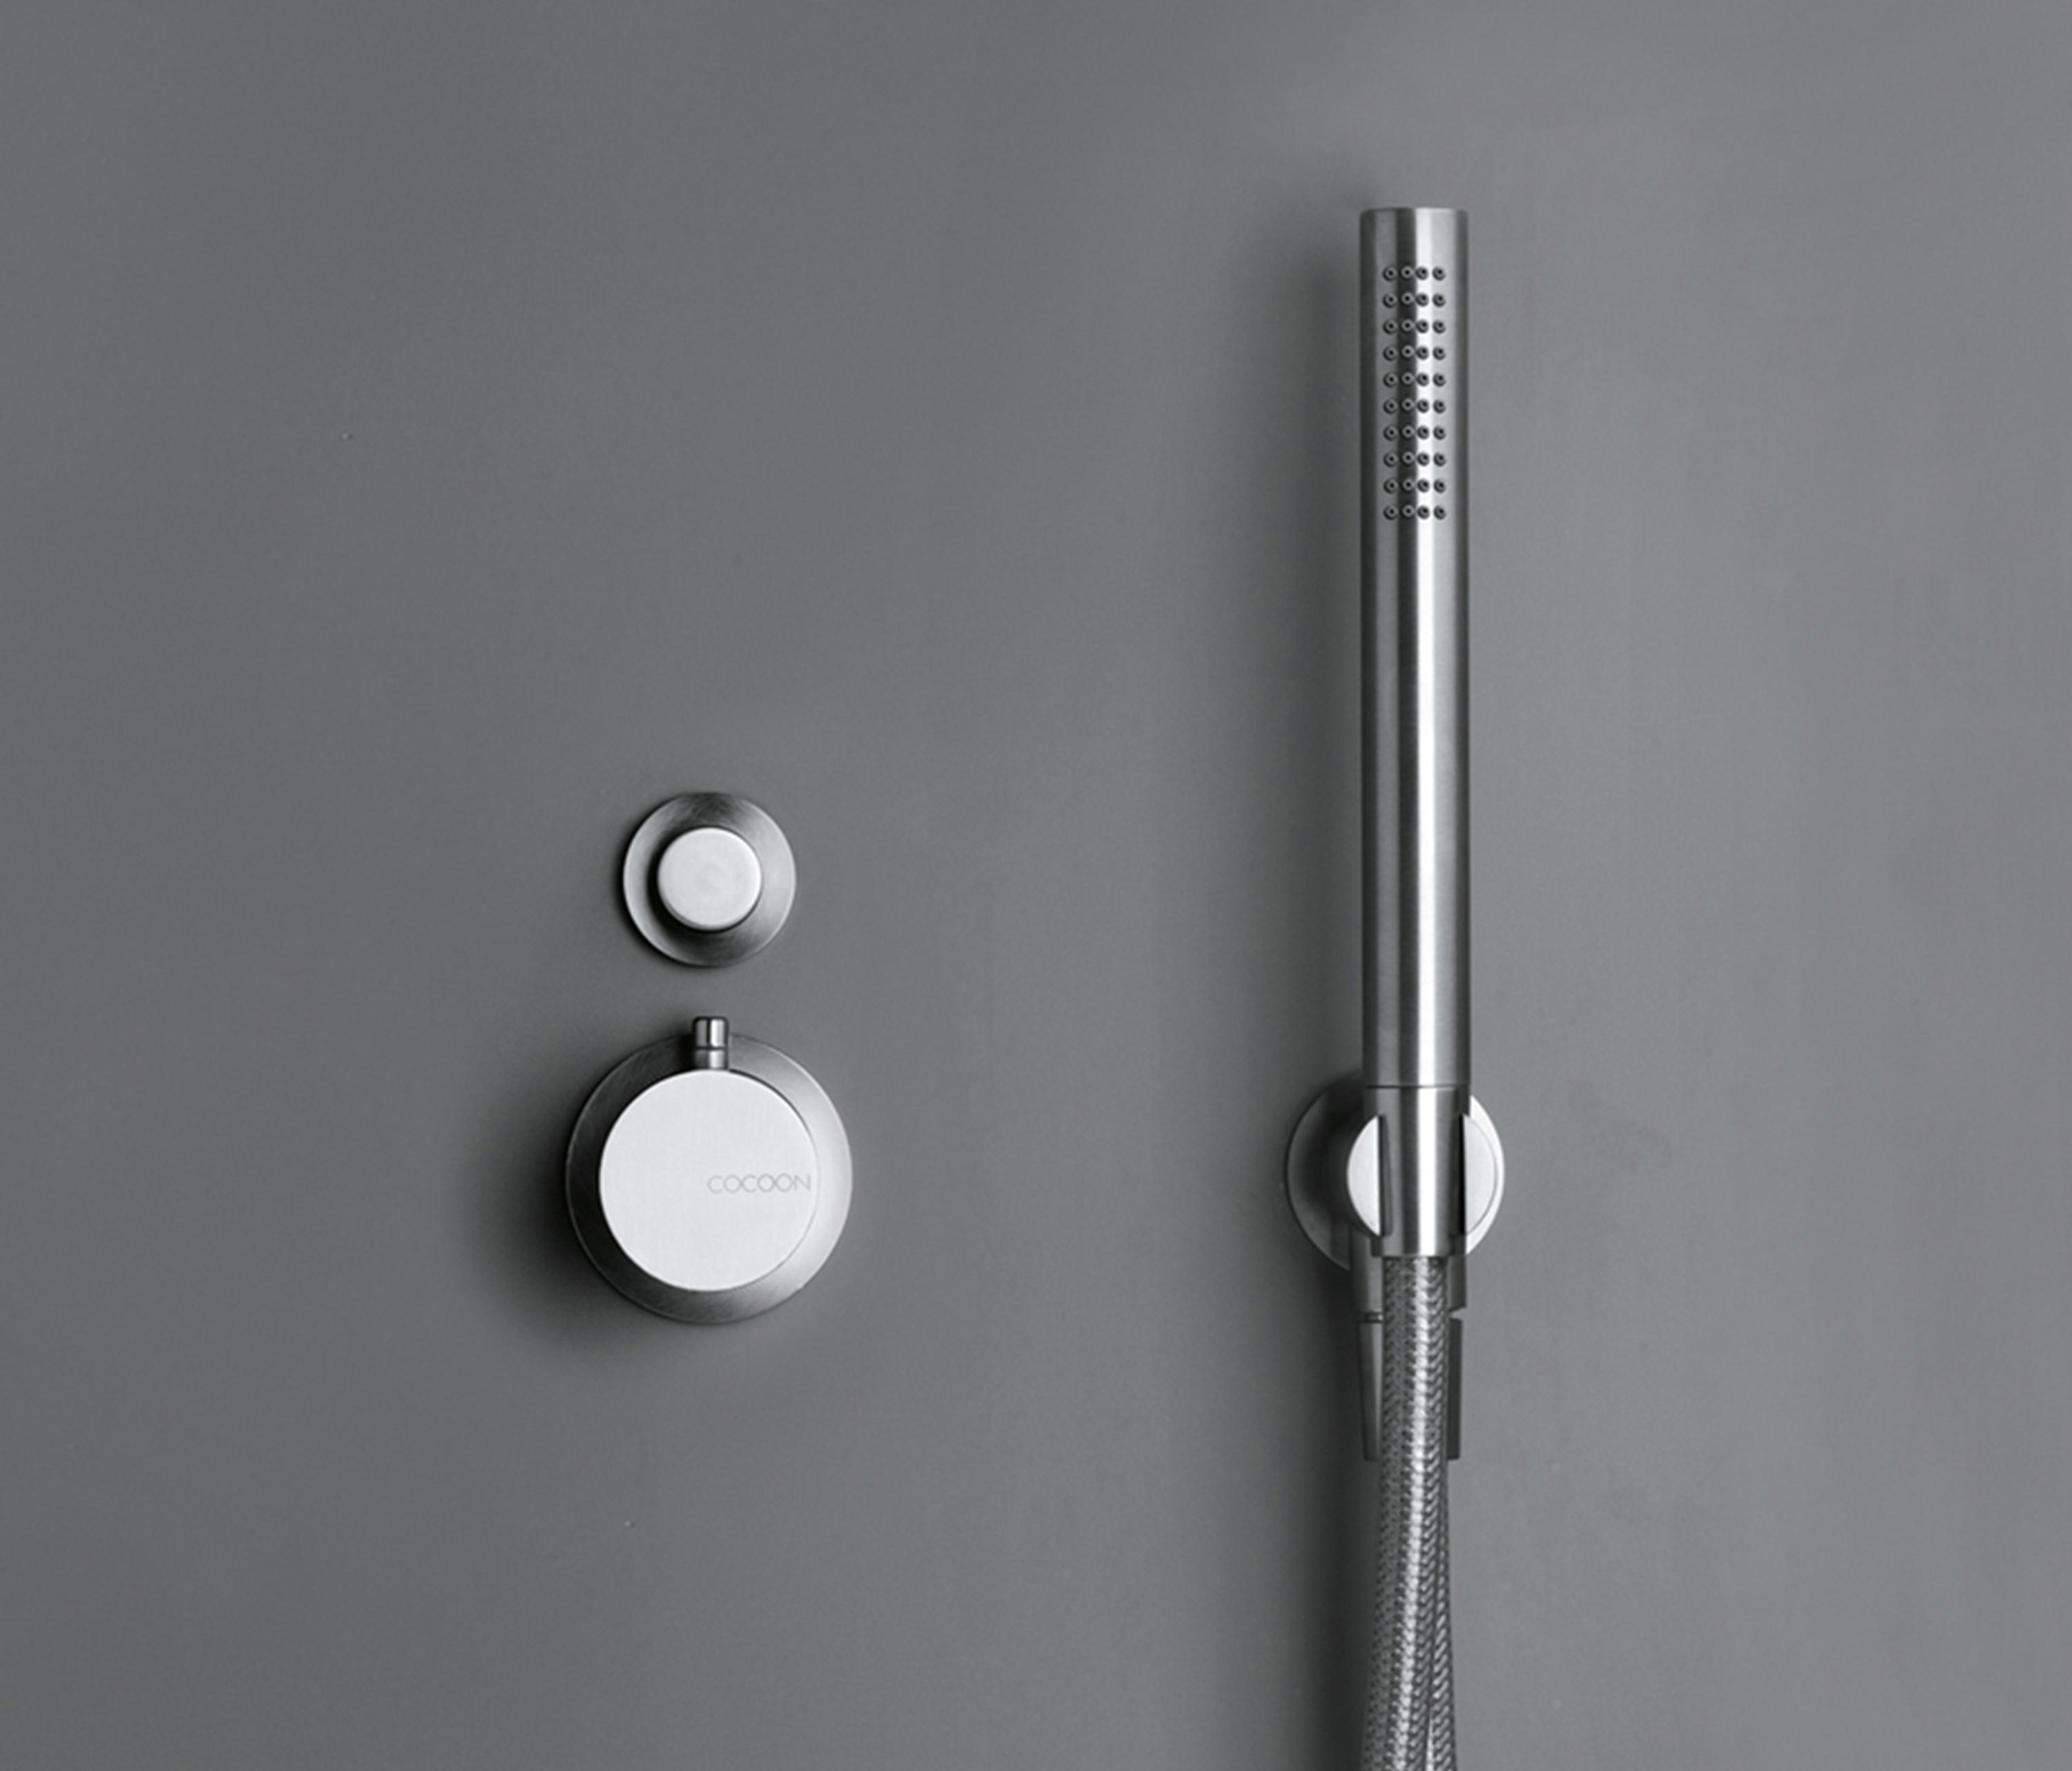 waterfall brands showers yorkshire head en shower francis square pegler product